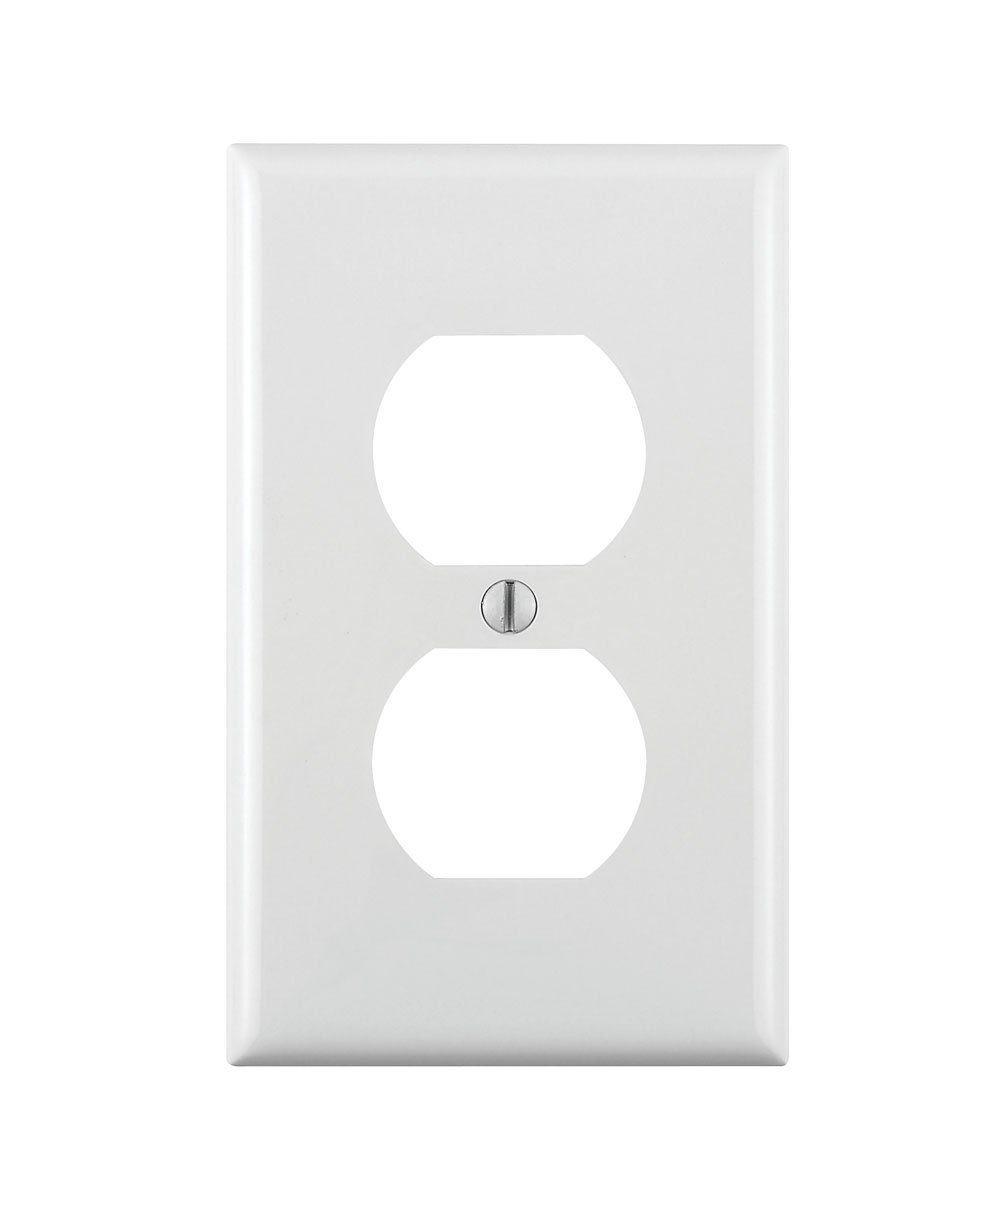 Leviton 80703-W 1-Duplex Receptacle Standard Size Wall Plate, 1 Gang, 4-1/2 In L X 2-3/4 In W 0.215 In T, 1 pack, White